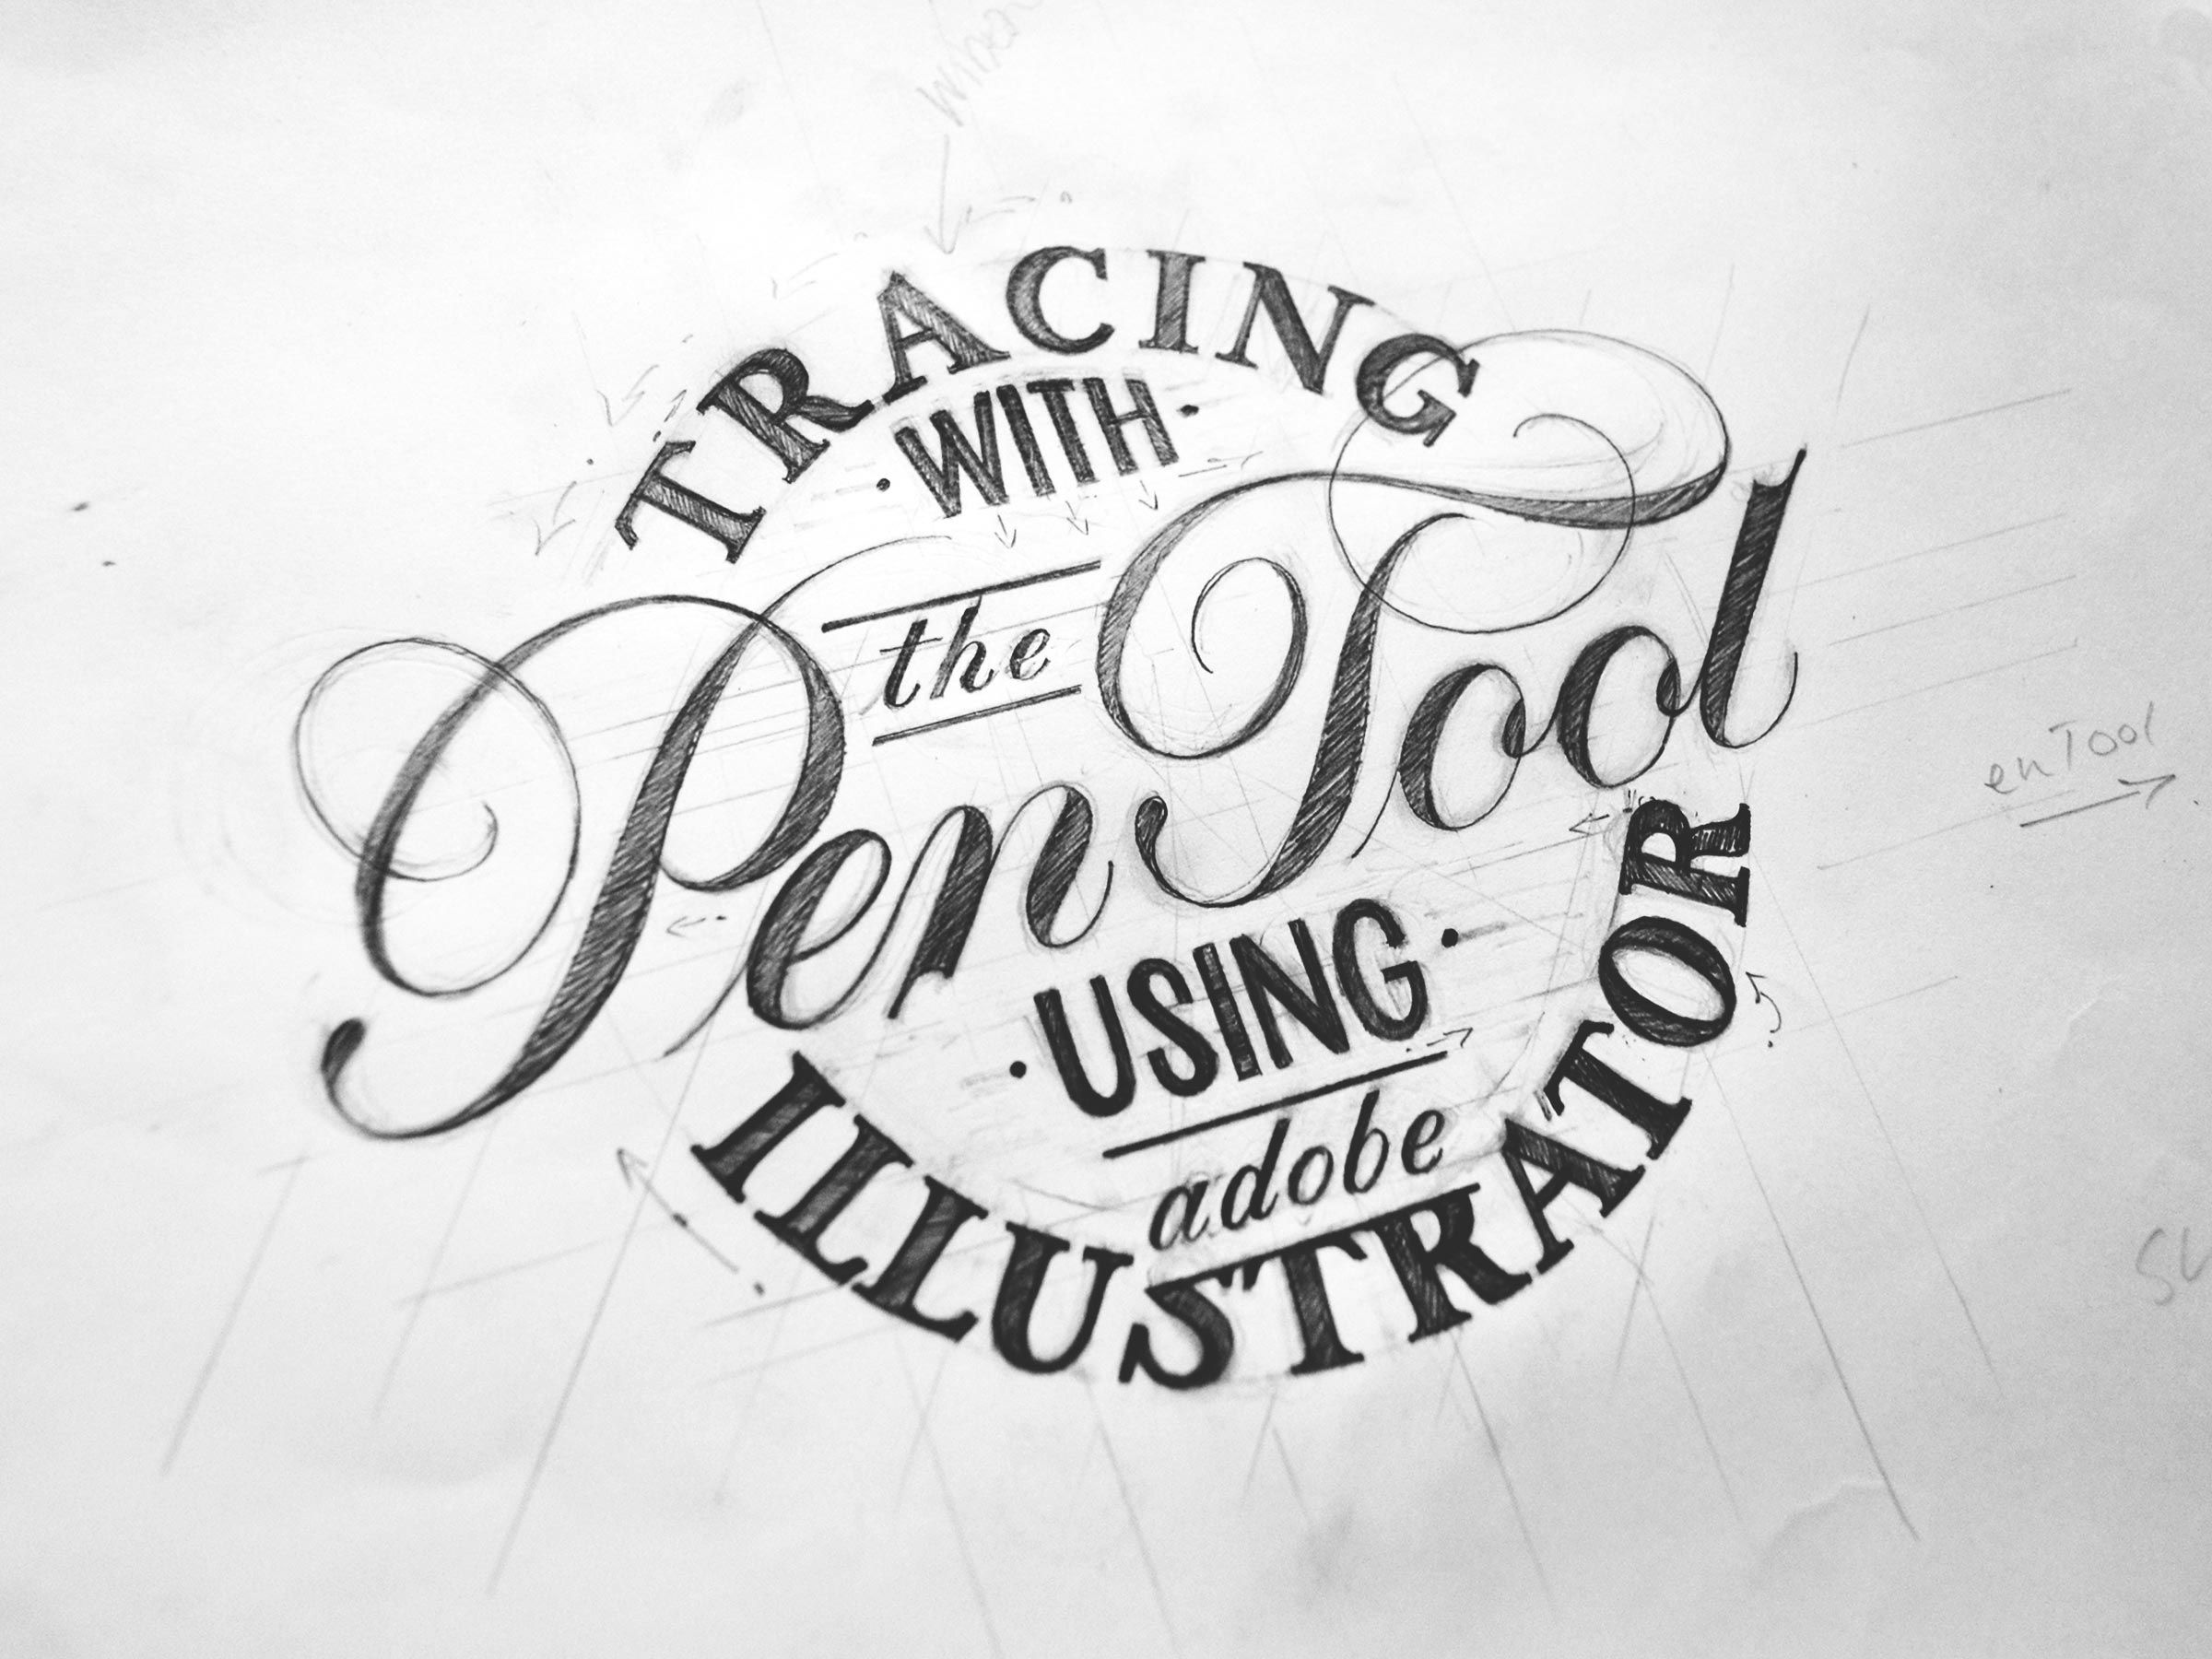 Tracing With The Pen Tool Using Adobe Illustrator